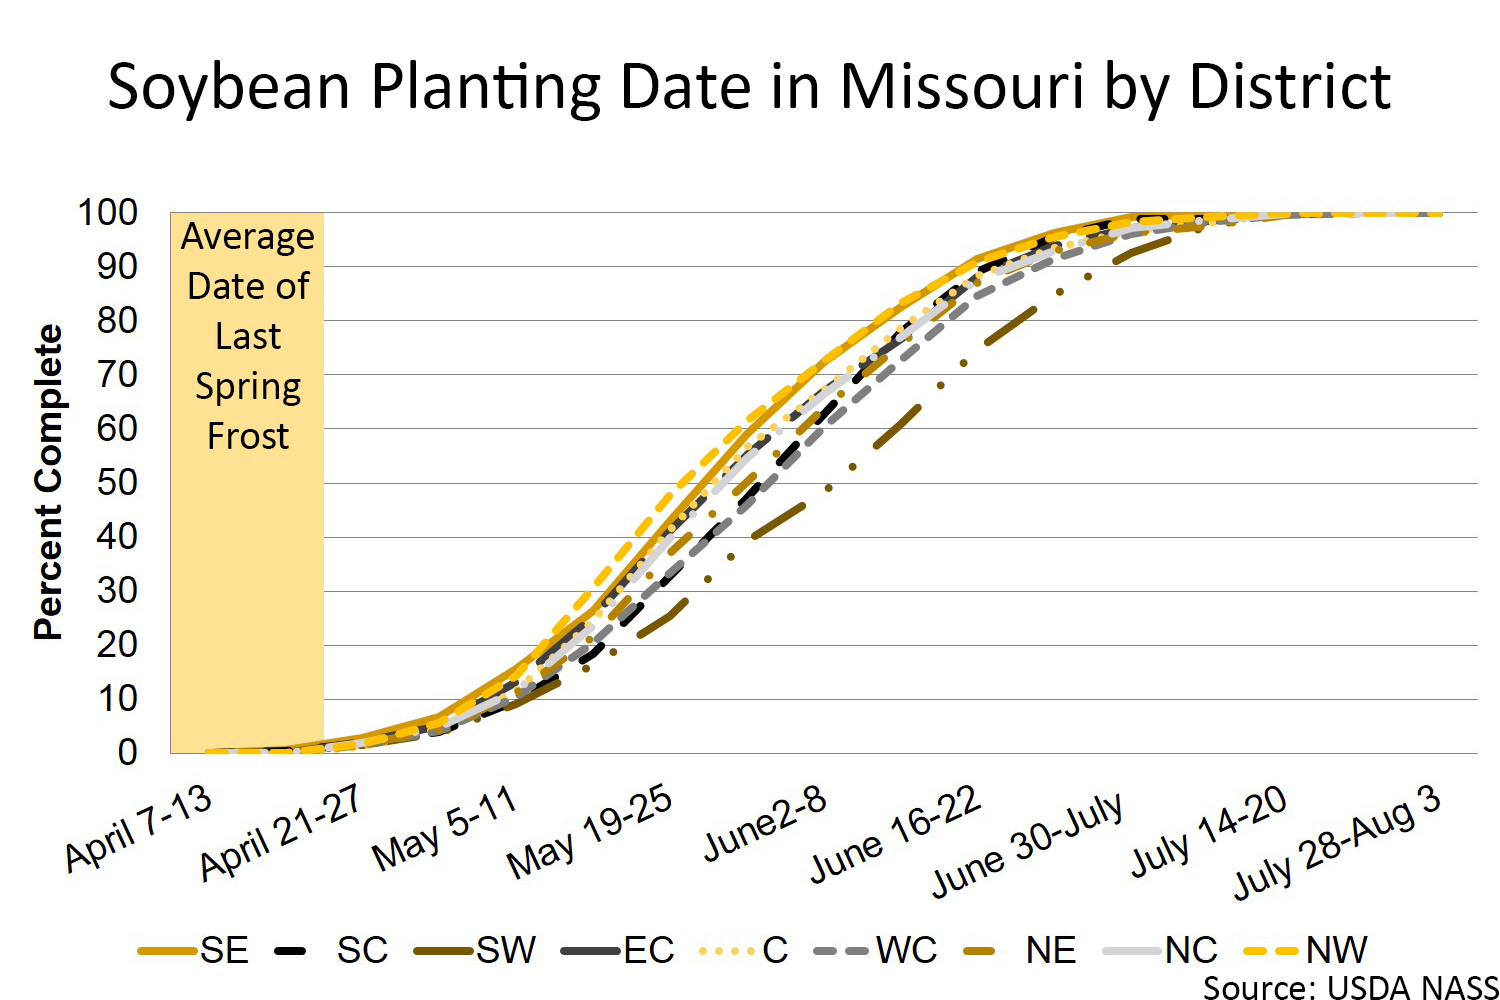 Missouri soybean planting date by district chart